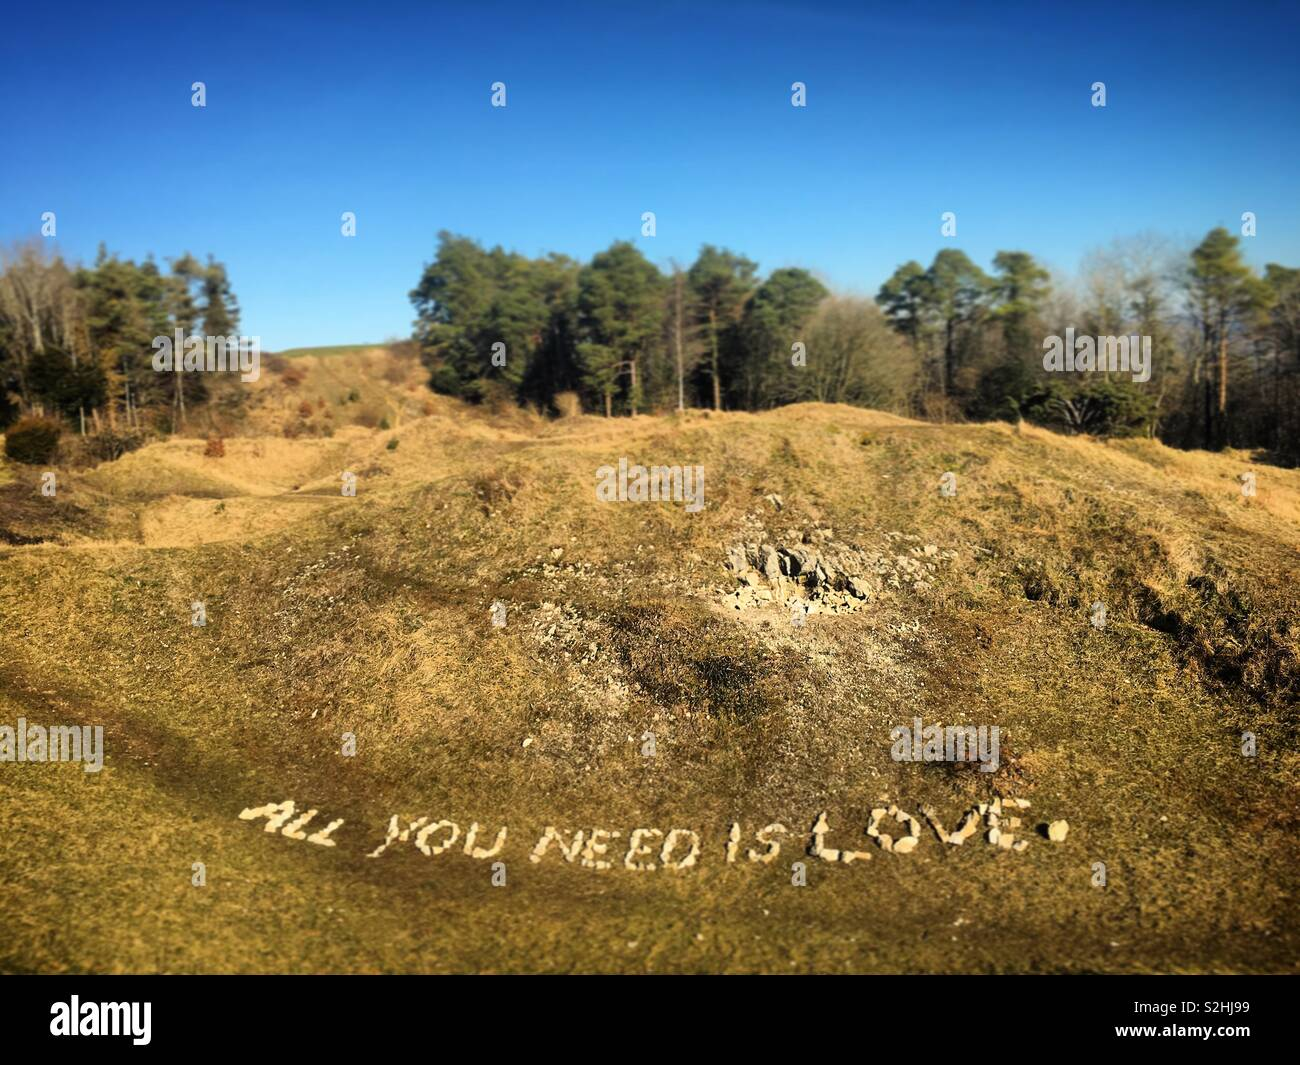 All you need is love stone art at Painswick Beacon Stock Photo